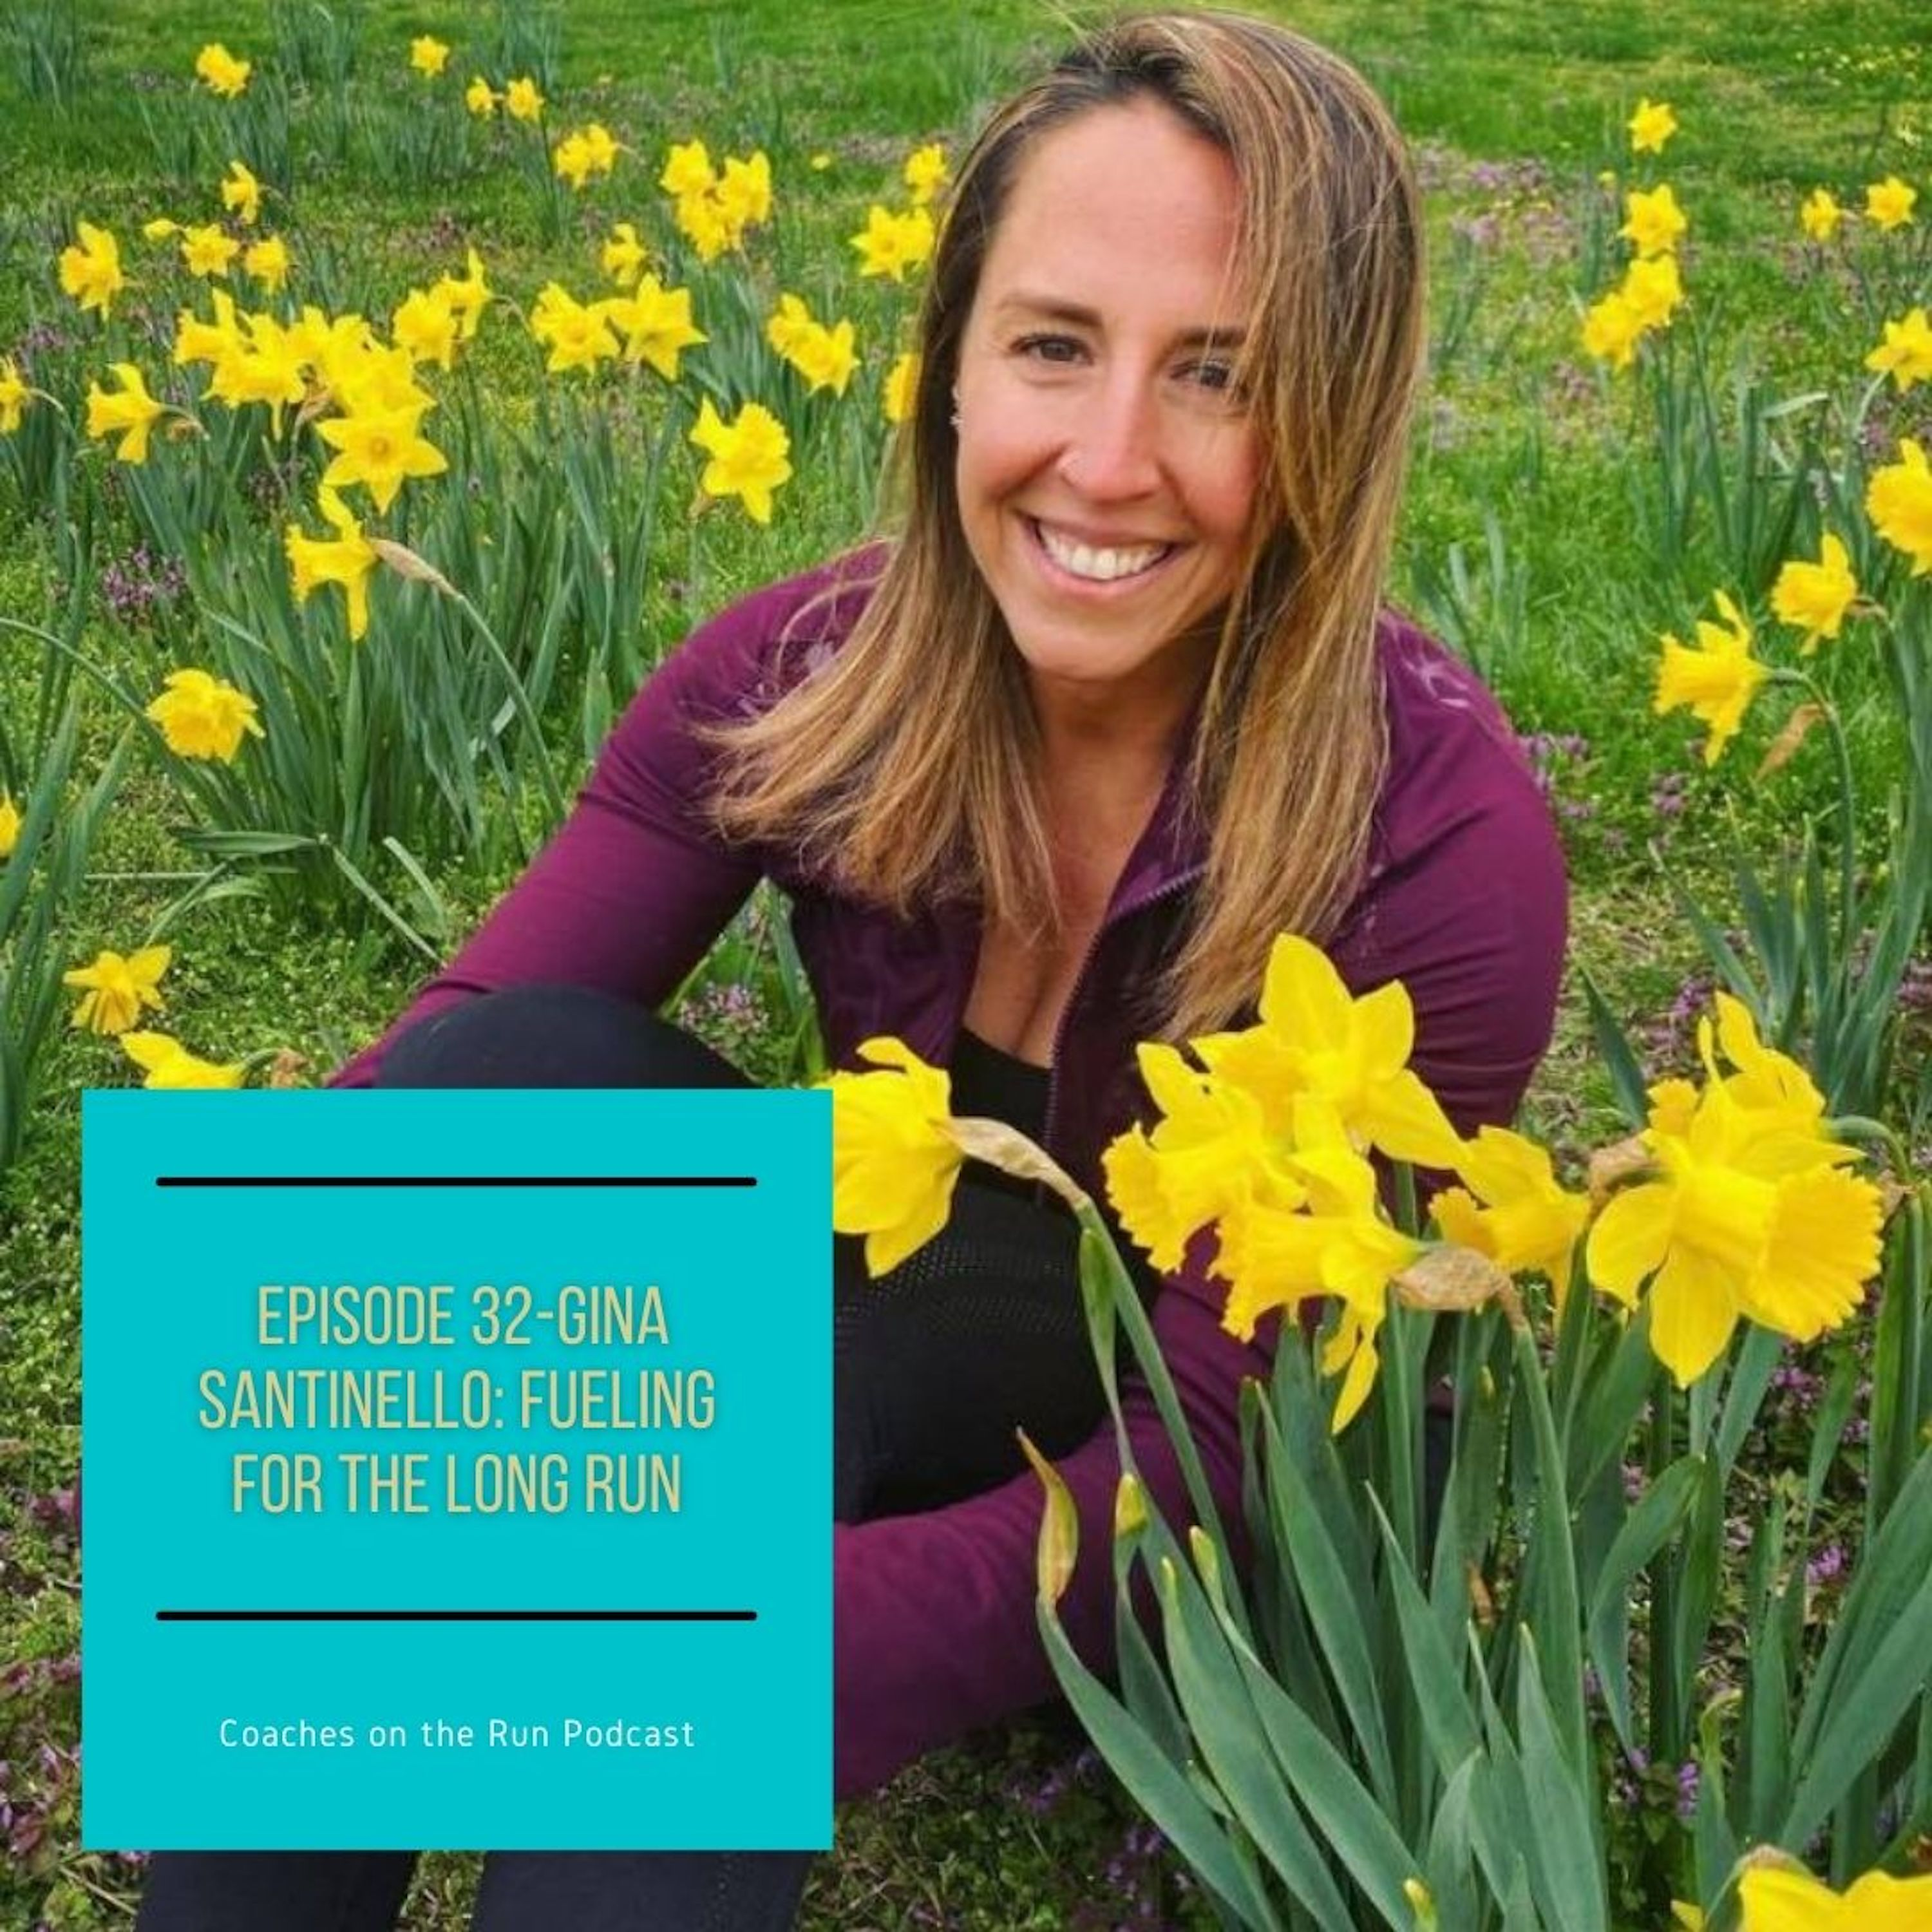 Gina Santinello: Fueling For the Long Run